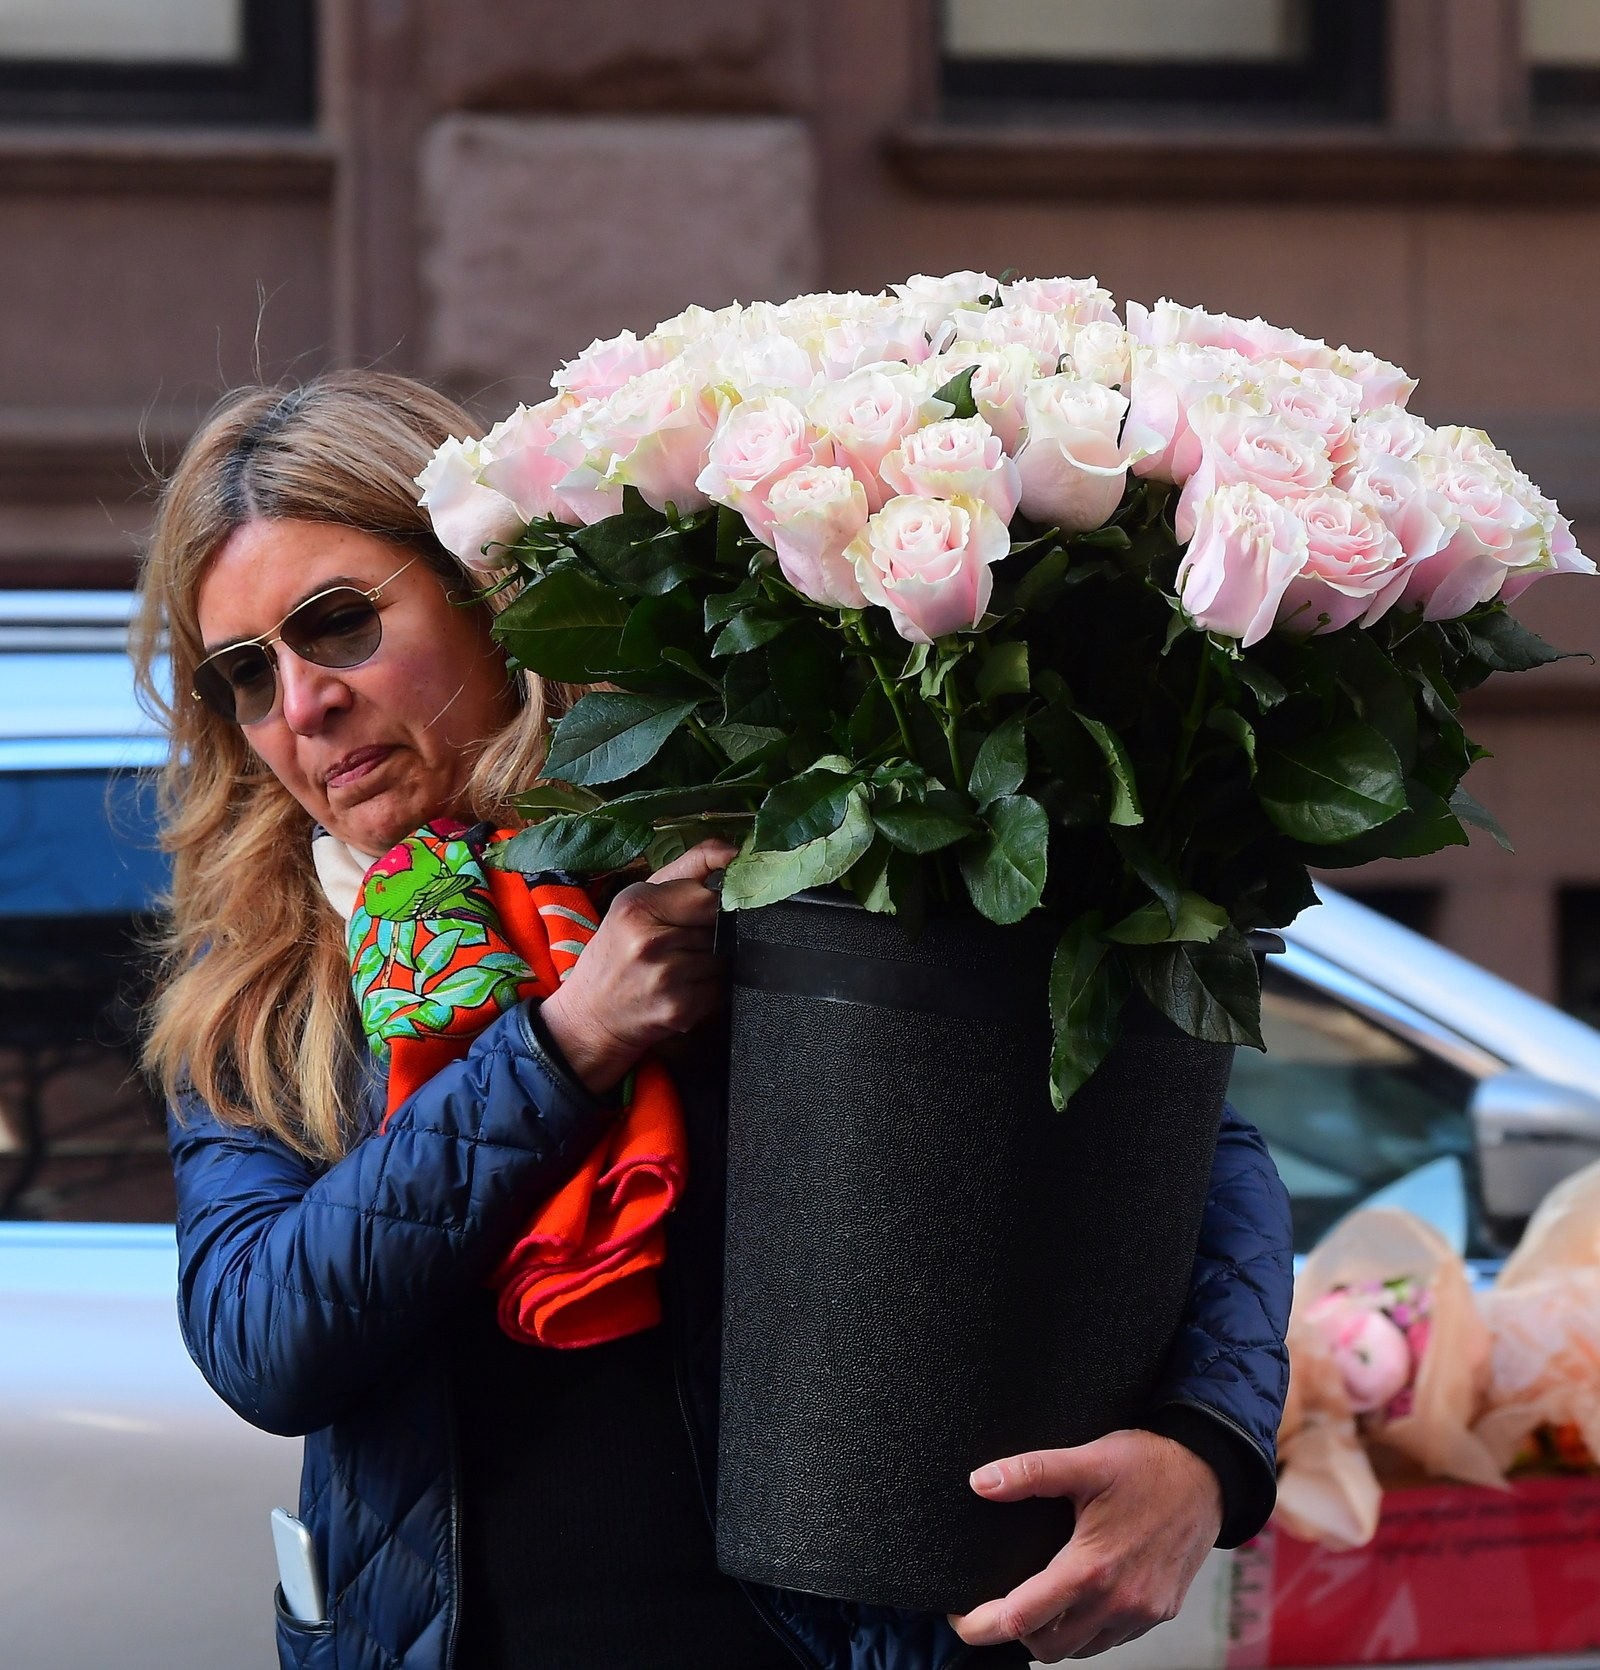 A woman carrying a bouquet of flowers into what is reportedly Meghan Markle's baby shower.